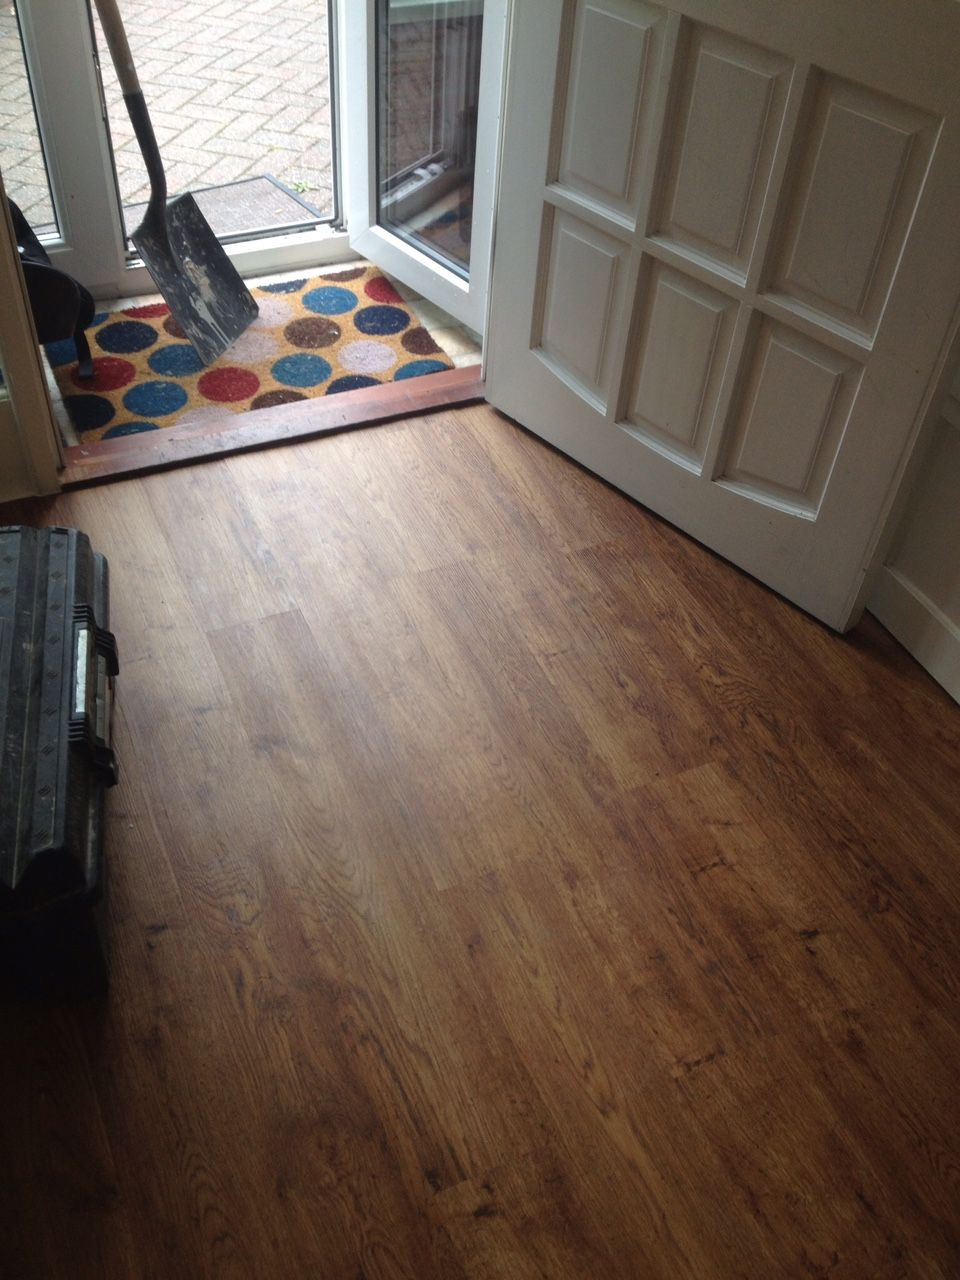 Polyflor camaro vintage timber new house ideas pinterest luxury vinyl tile flooring practical versatile this vinyl flooring is suitable for every room call now for a free quote dailygadgetfo Gallery